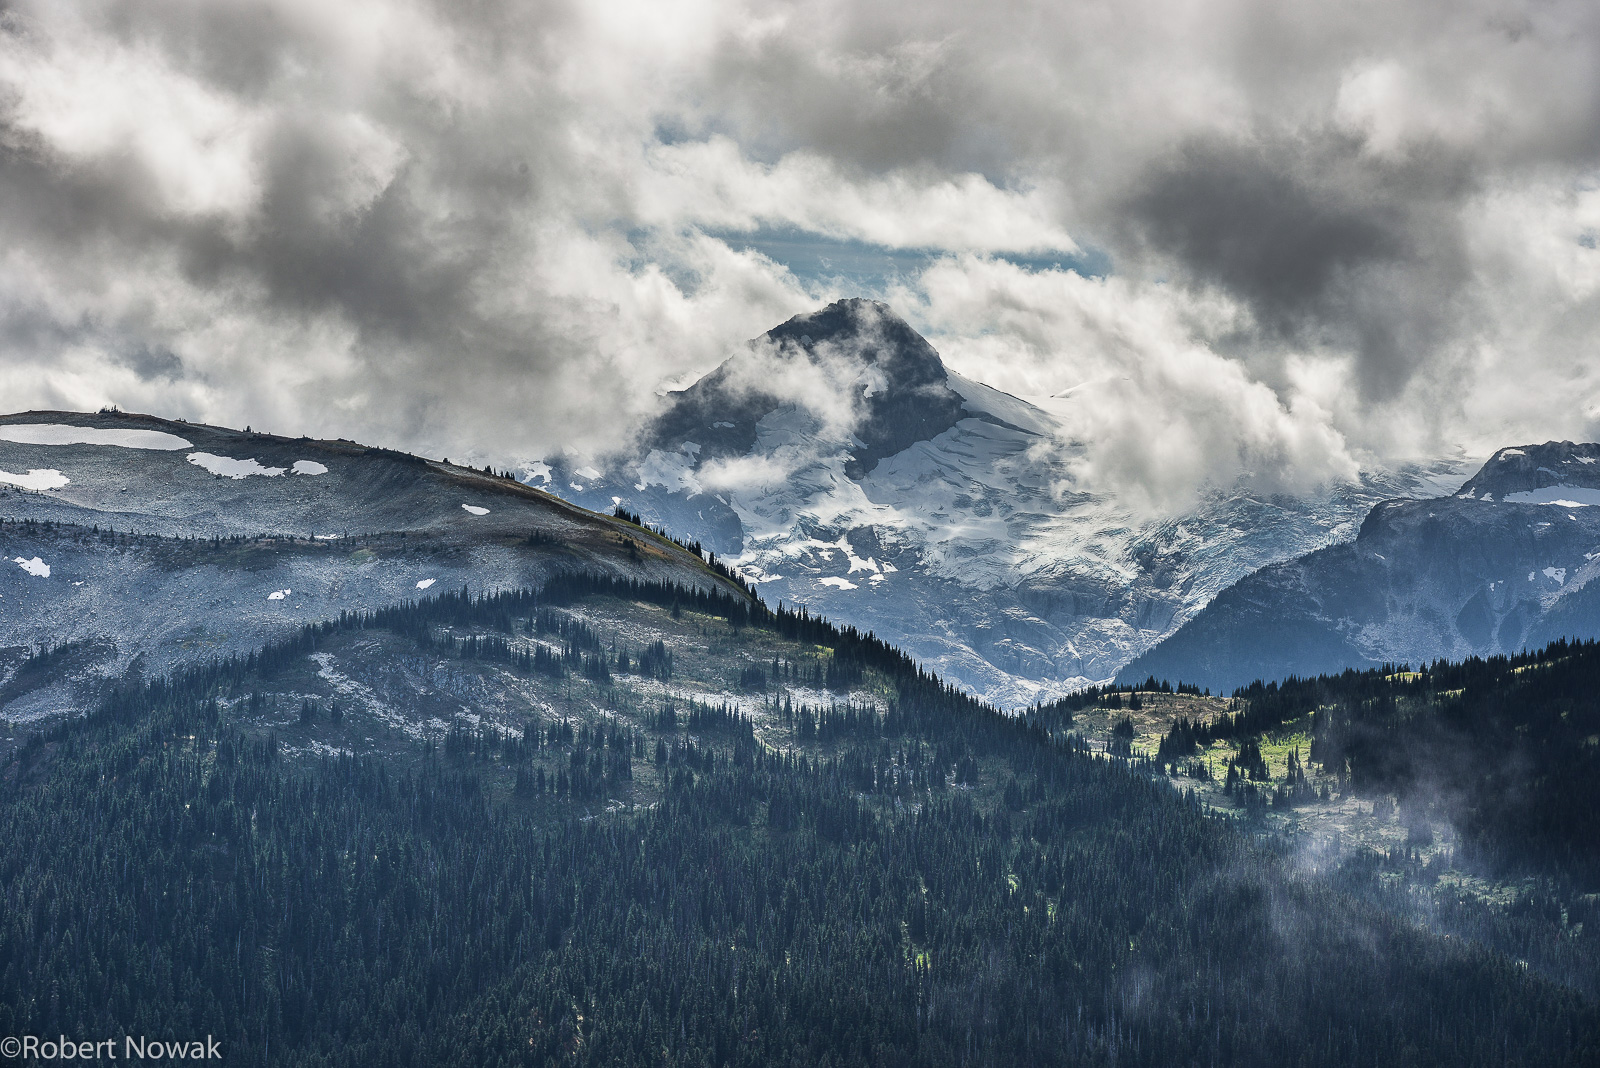 Mt. Davidson, British Columbia, Canada, Blackcomb Peak, Garibaldi Provincial Park, storm, clouds,, photo